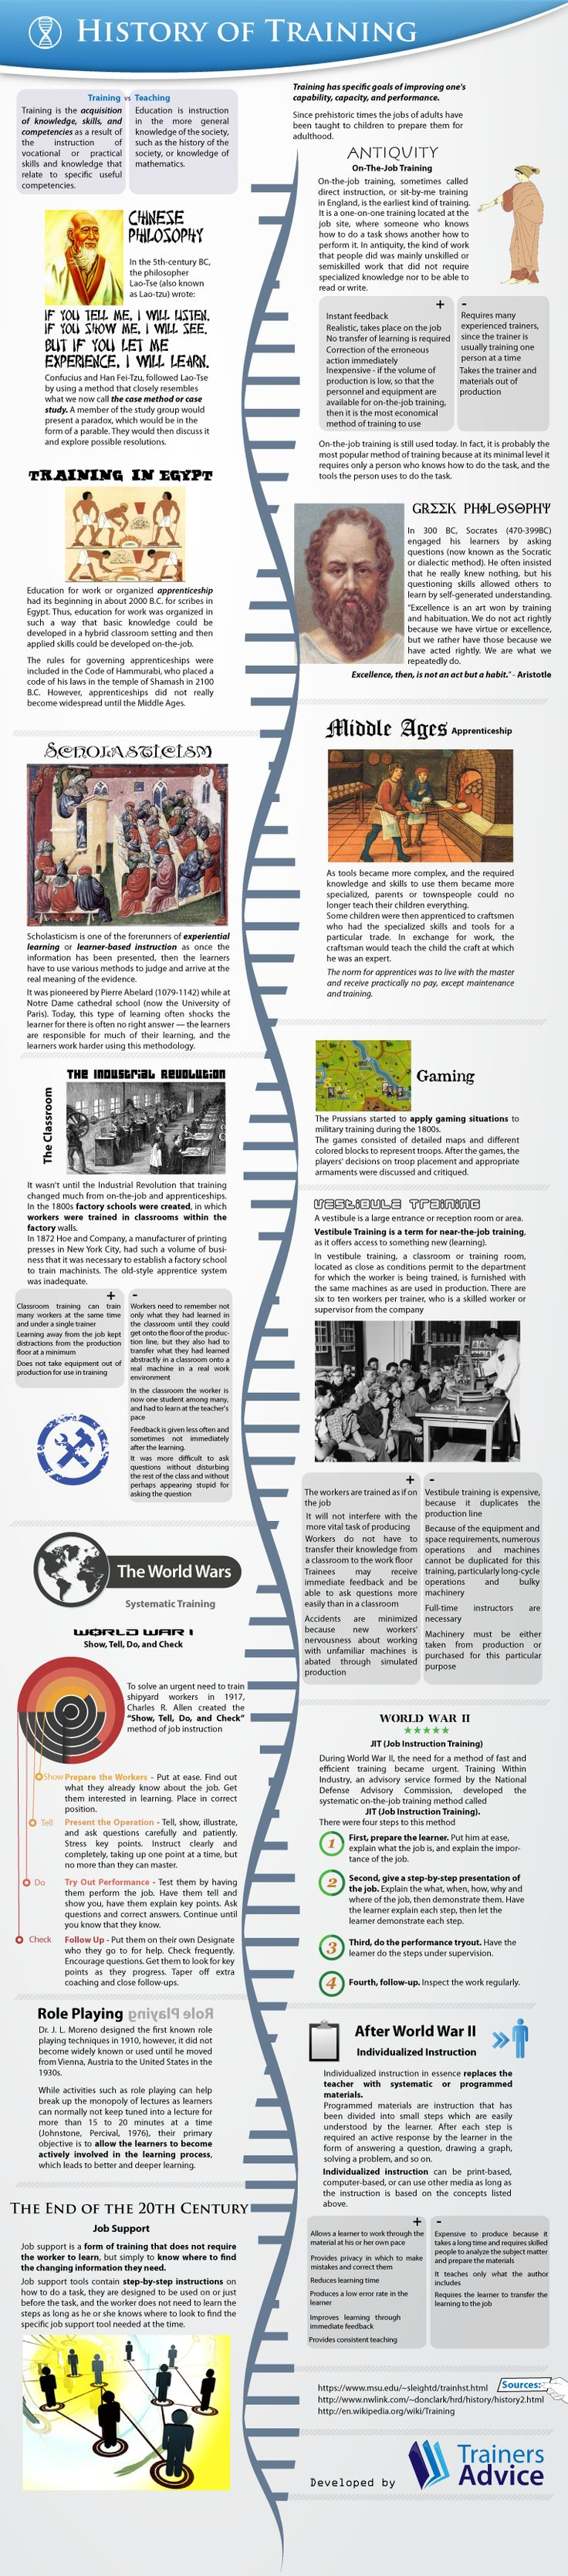 """Ever wondered how the """"training industry"""" was born? Or where? How the learning process was done in the Middle Ages? What materials or teaching tools were used to develop competencies and behaviors?  Well your curiosity will be put to rest for we have created the History of Training Infographic to offer perspective and answers to all the questions above."""